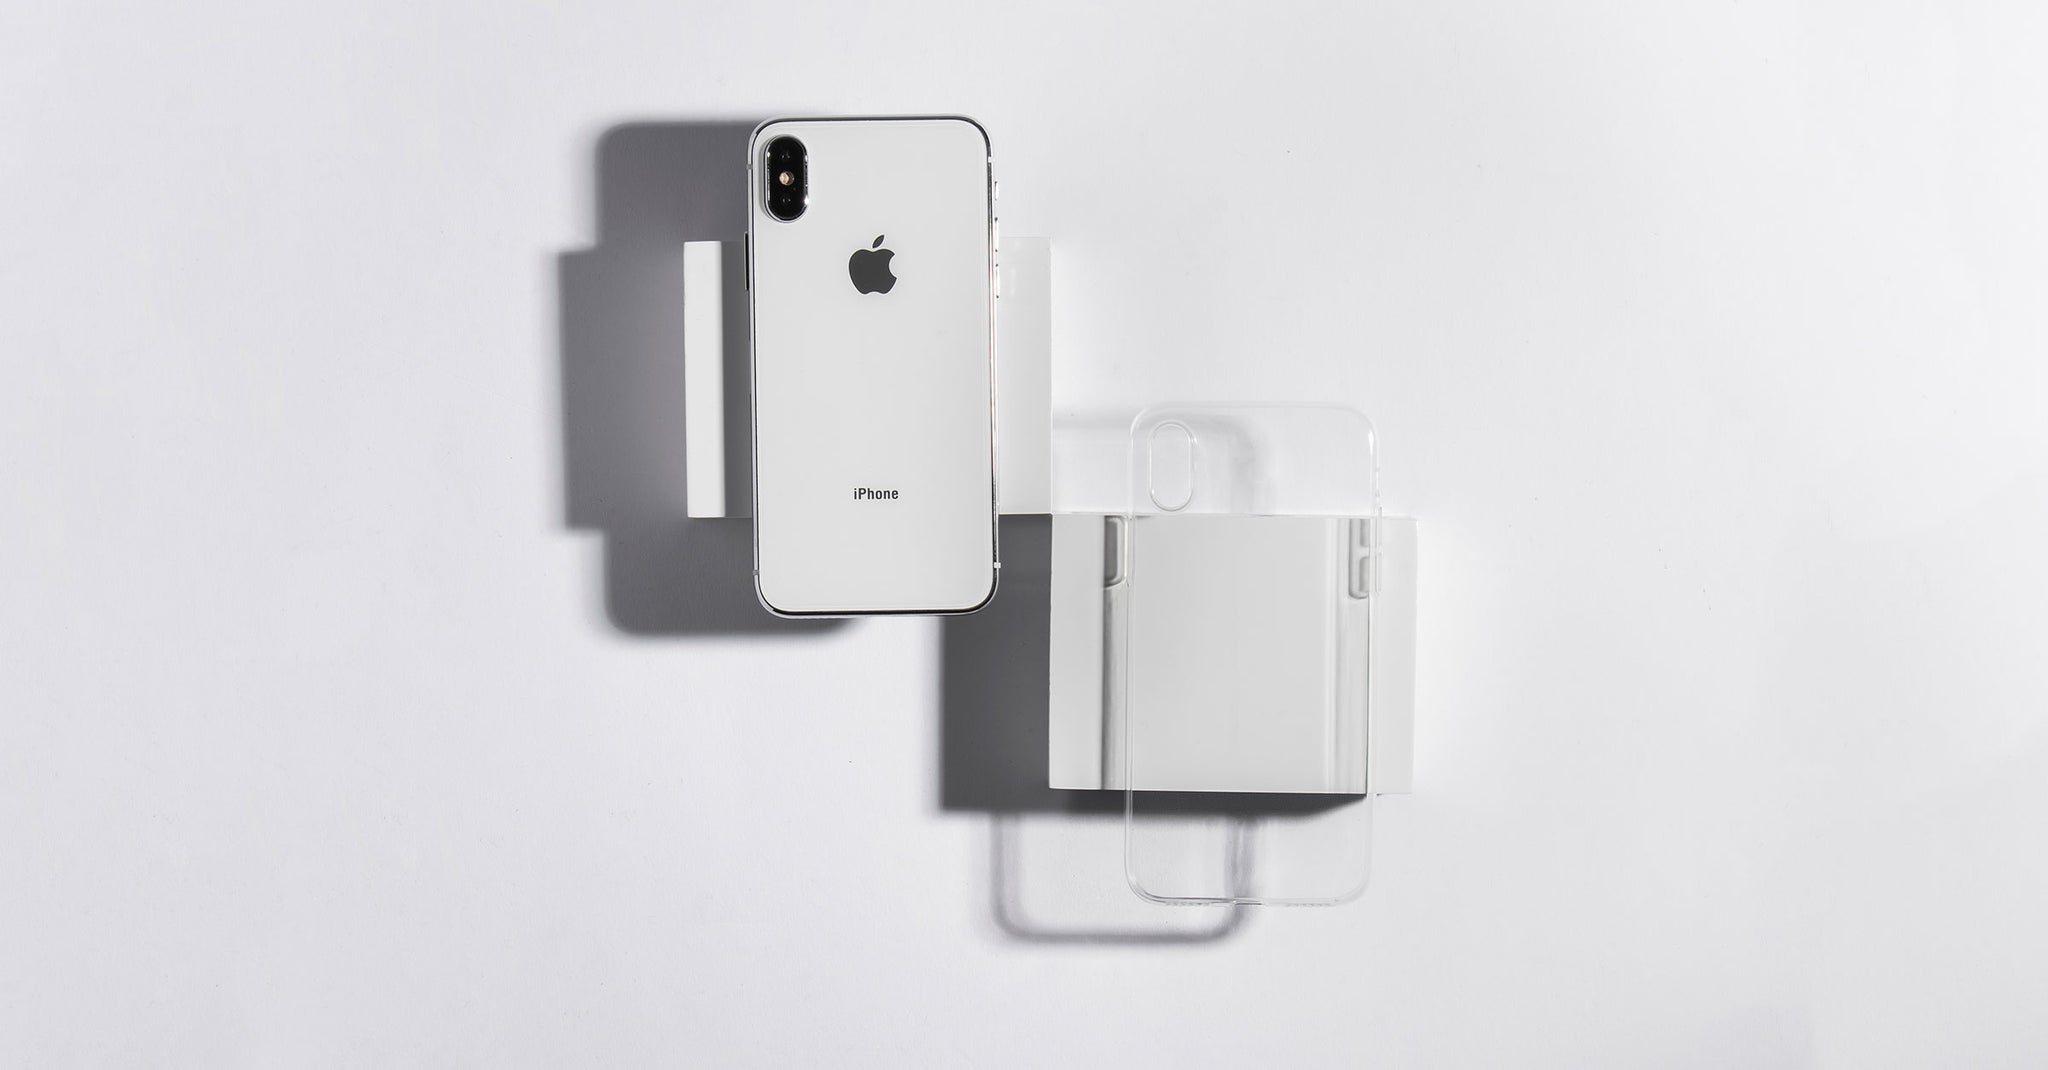 iPhone X case vs an XS case